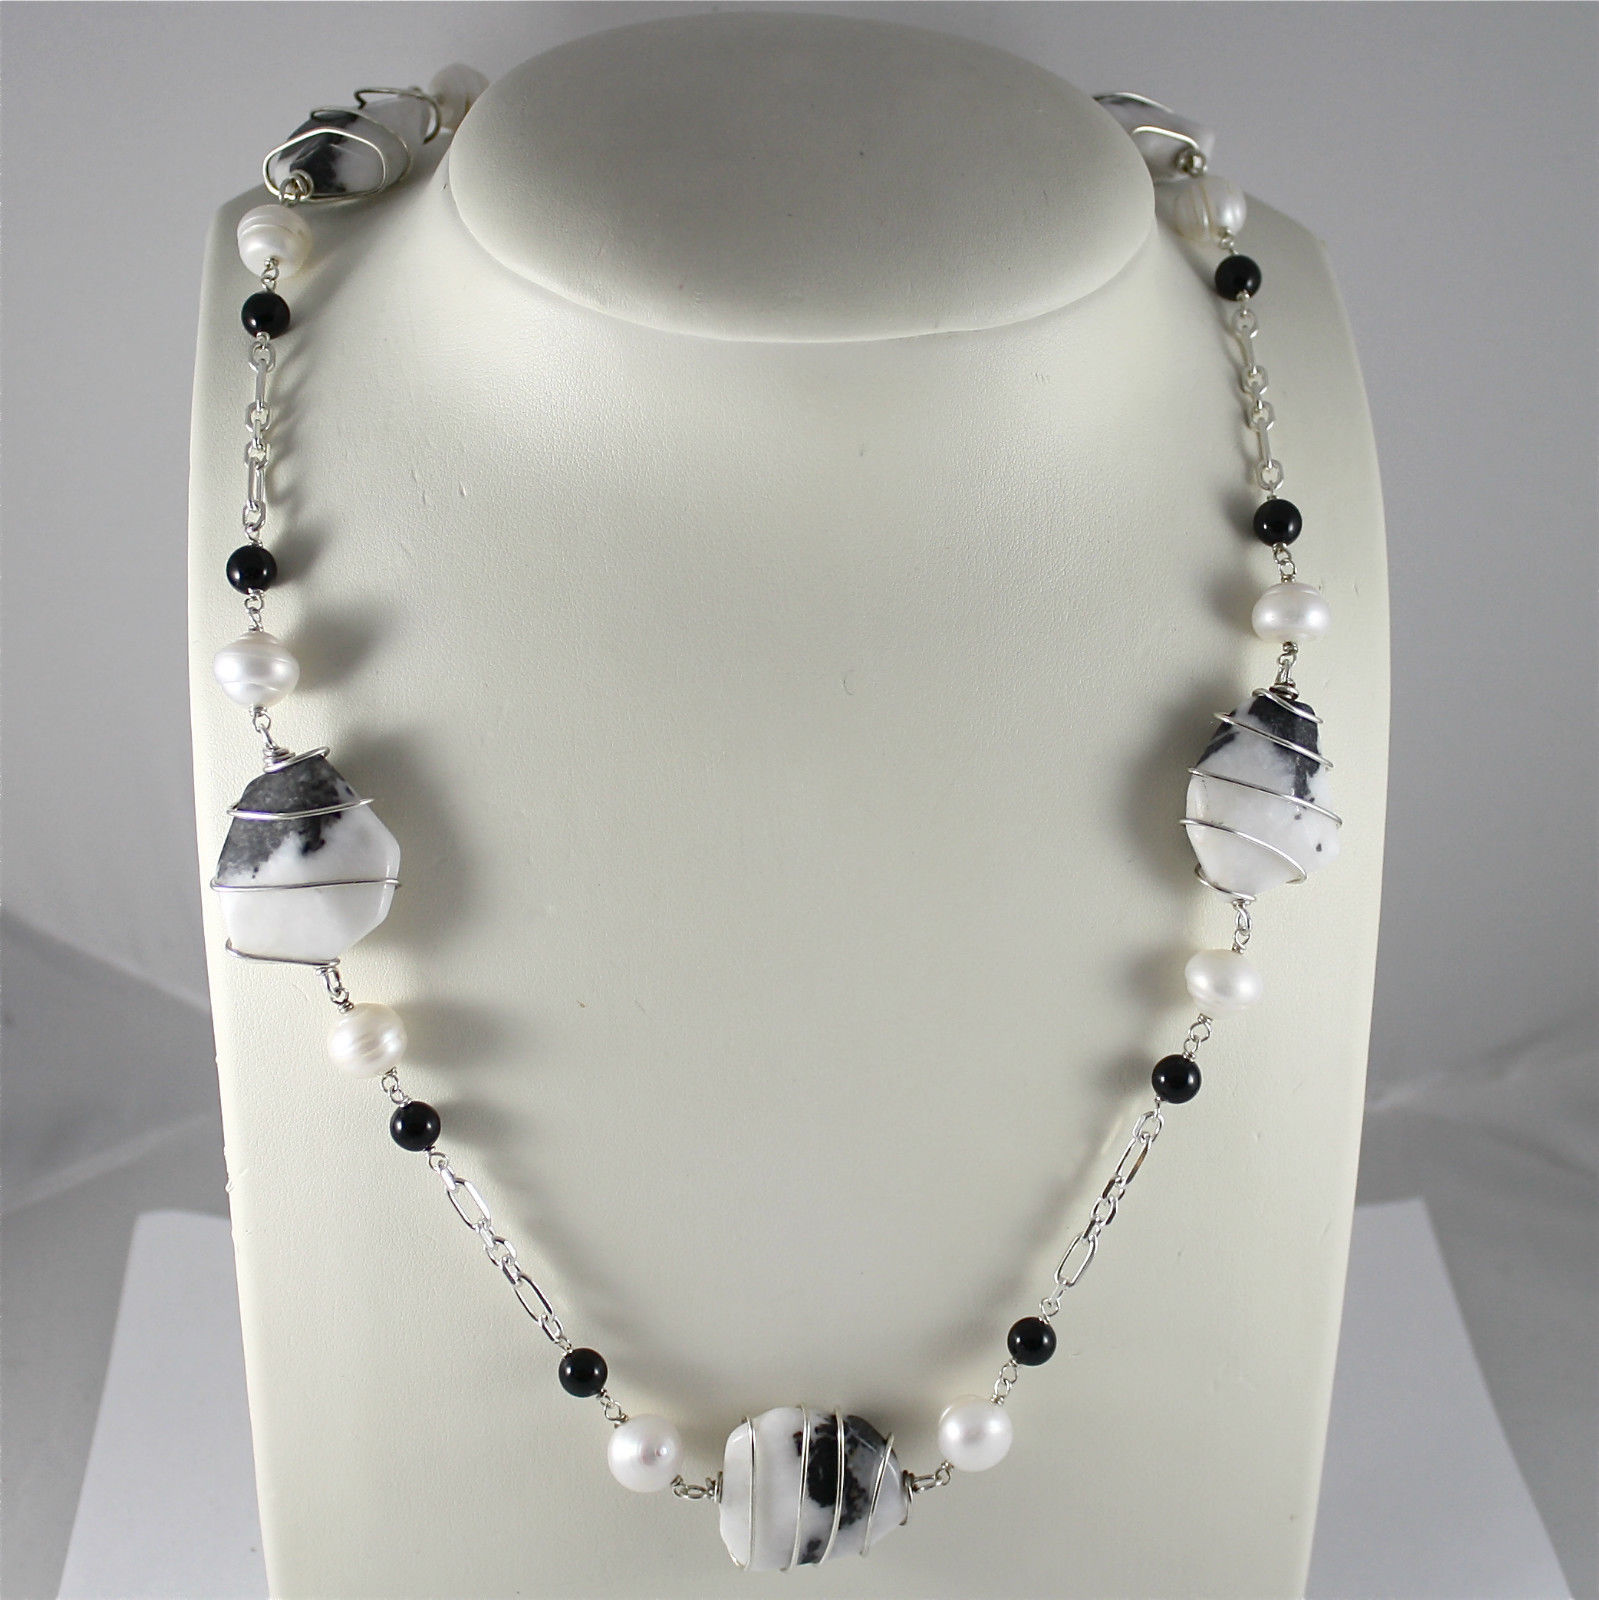 925 Silver Necklace, Onyx Black, White Pearls, Quartz spotted